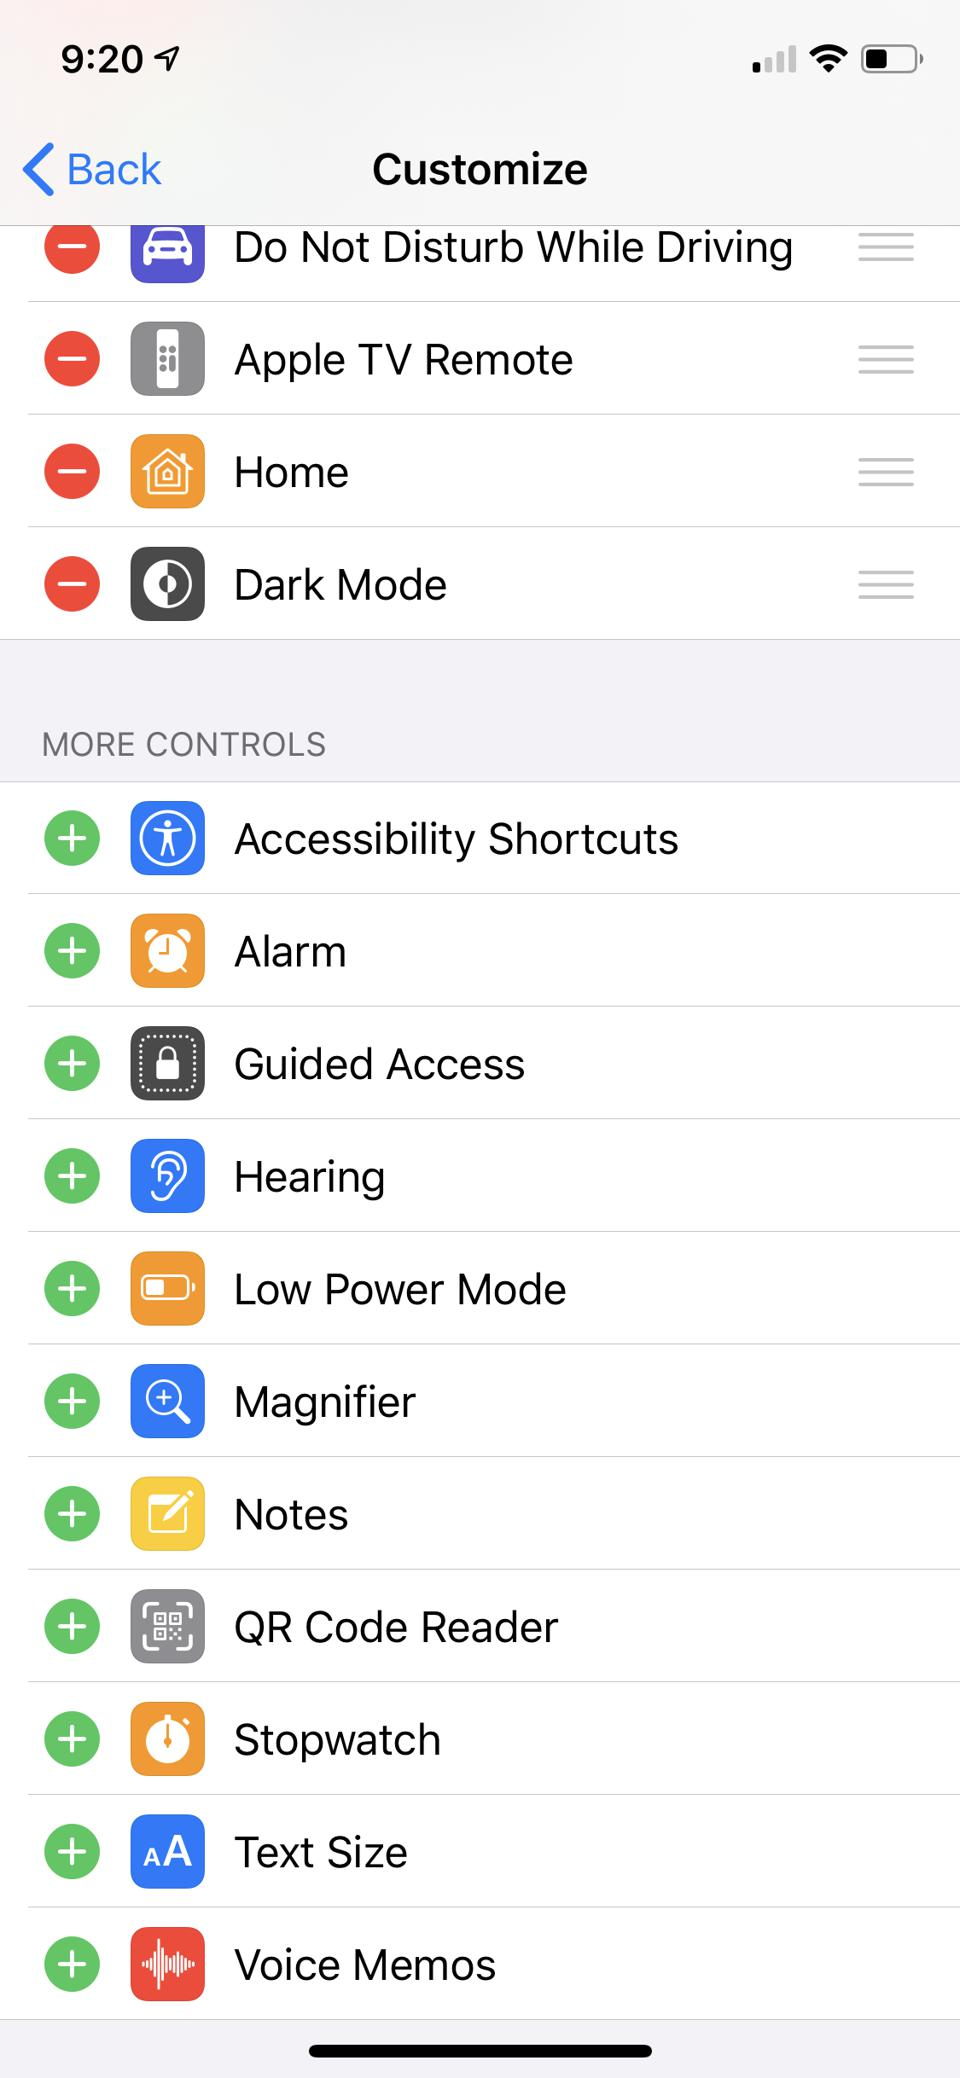 Apple's Control Center settings does not have an AirPods Pro option